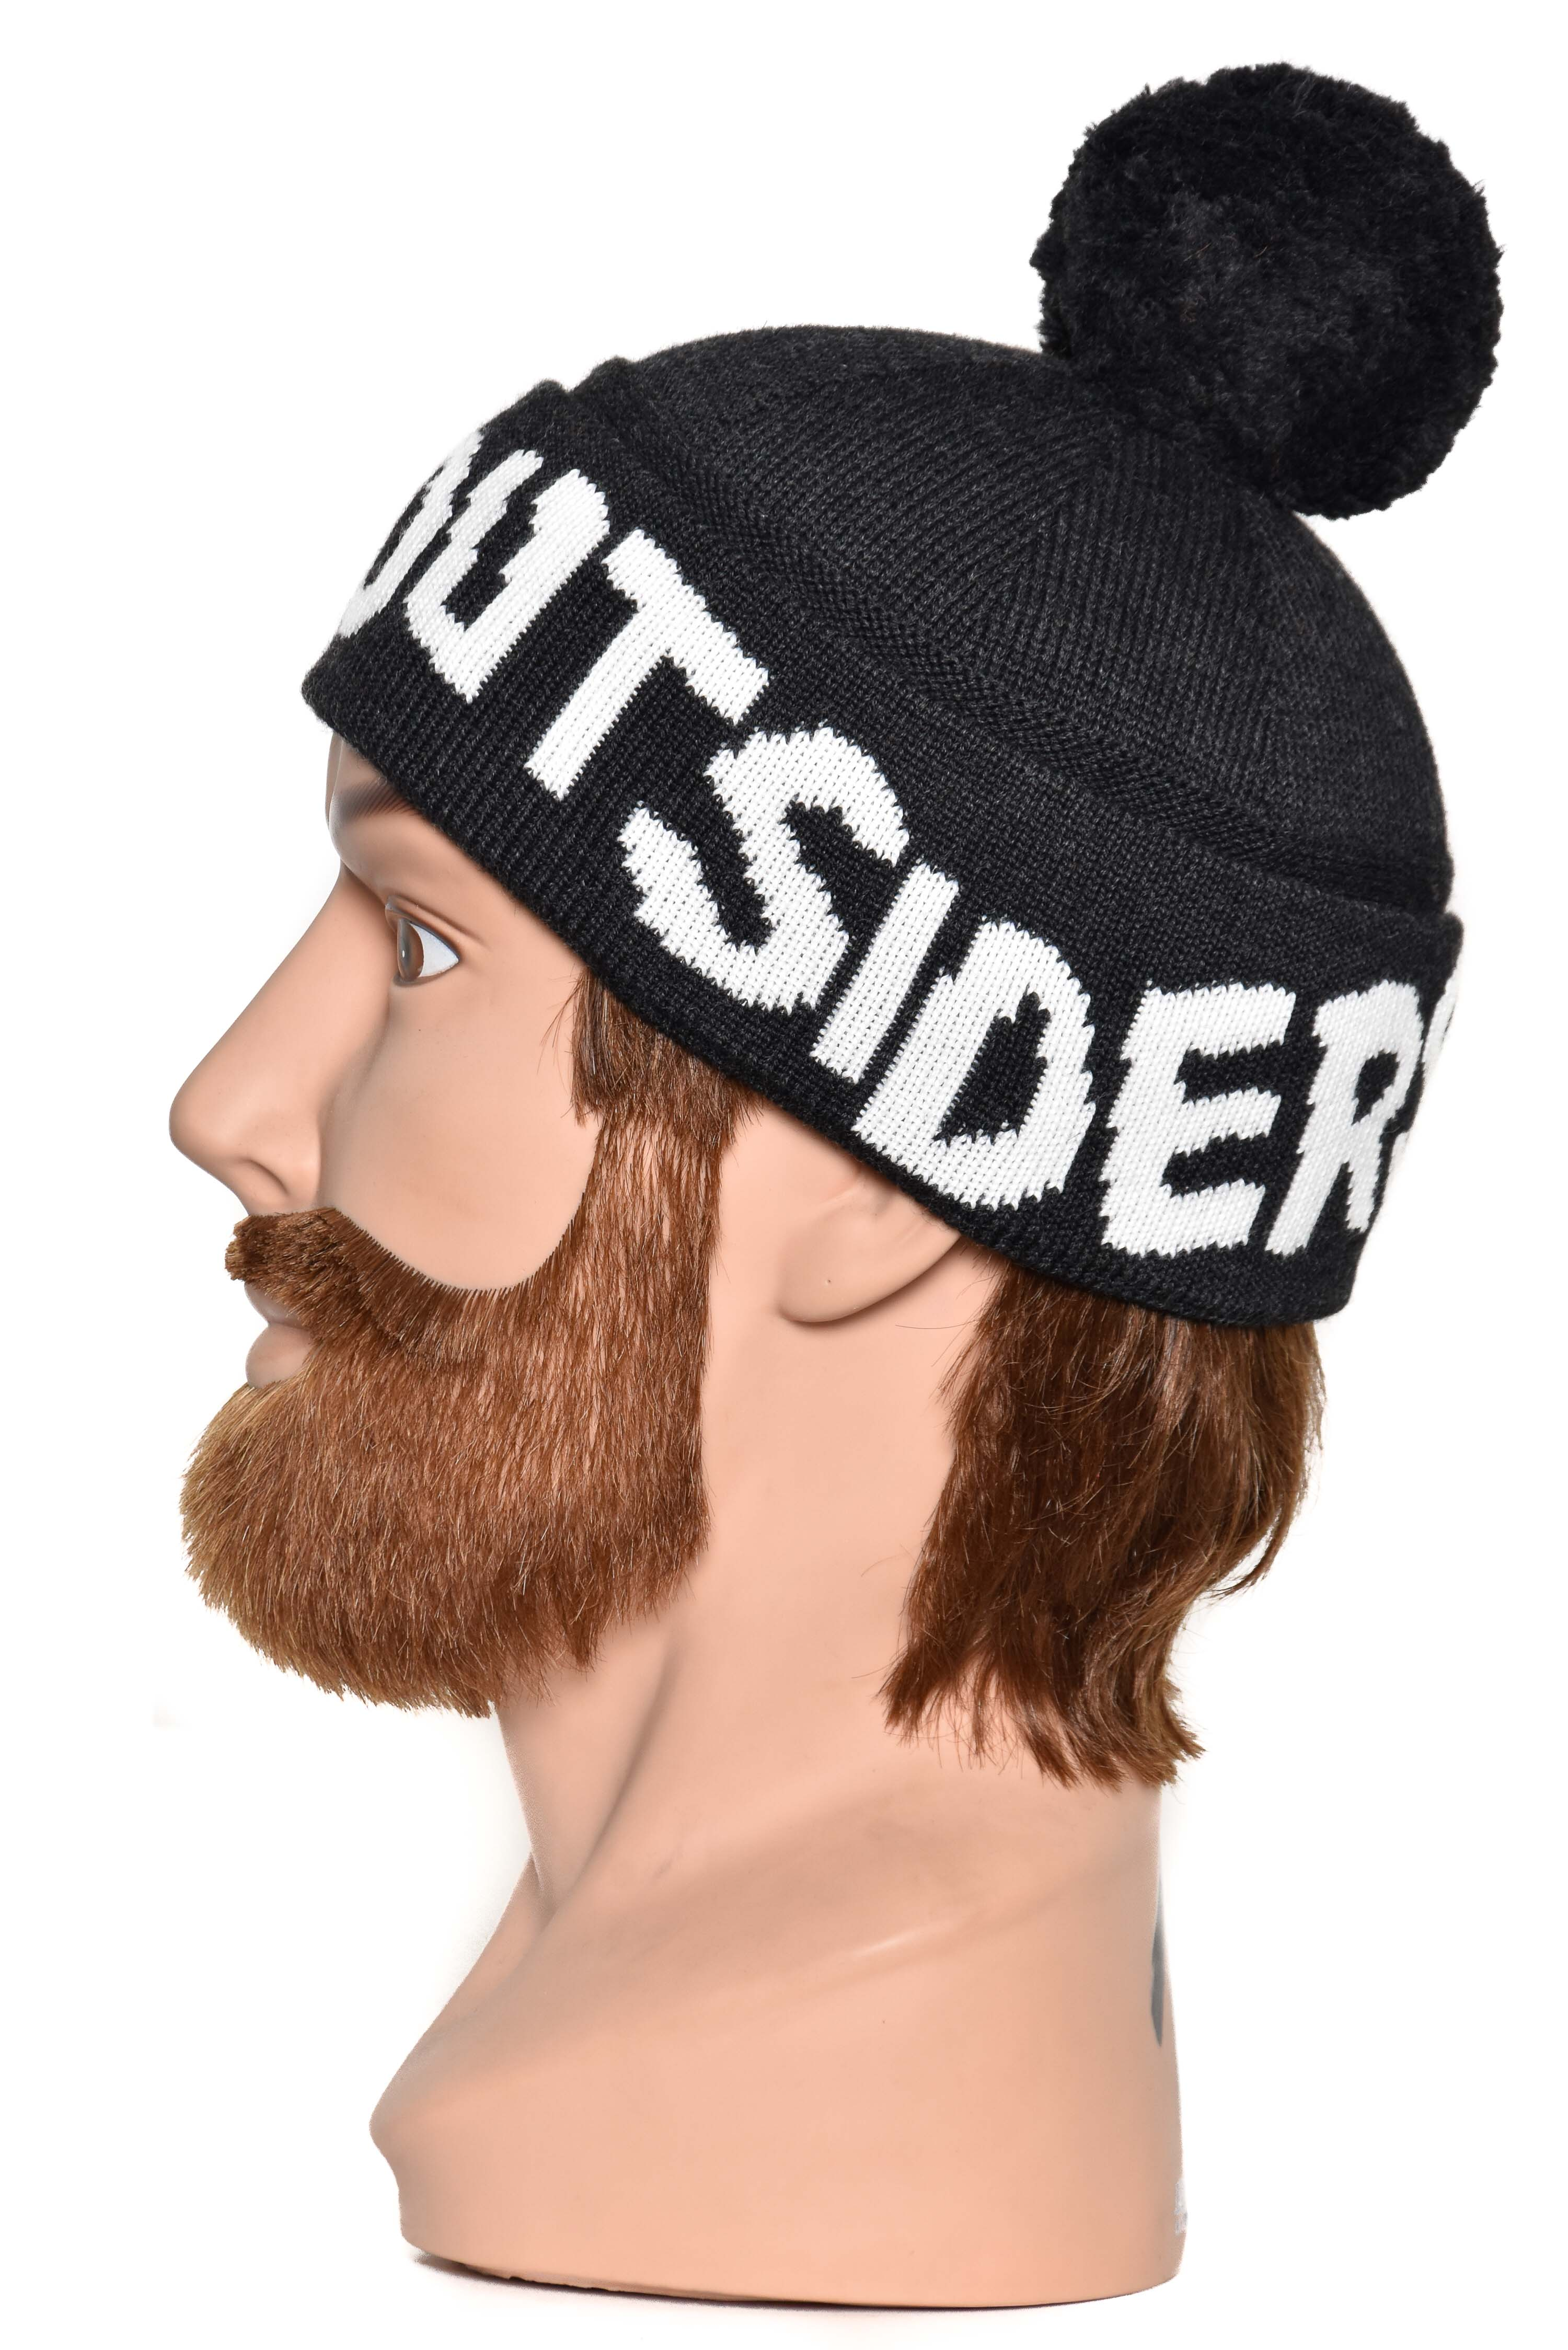 Band of outsiders Band Pompom Beanie KW12 CK110 8001 charcoal